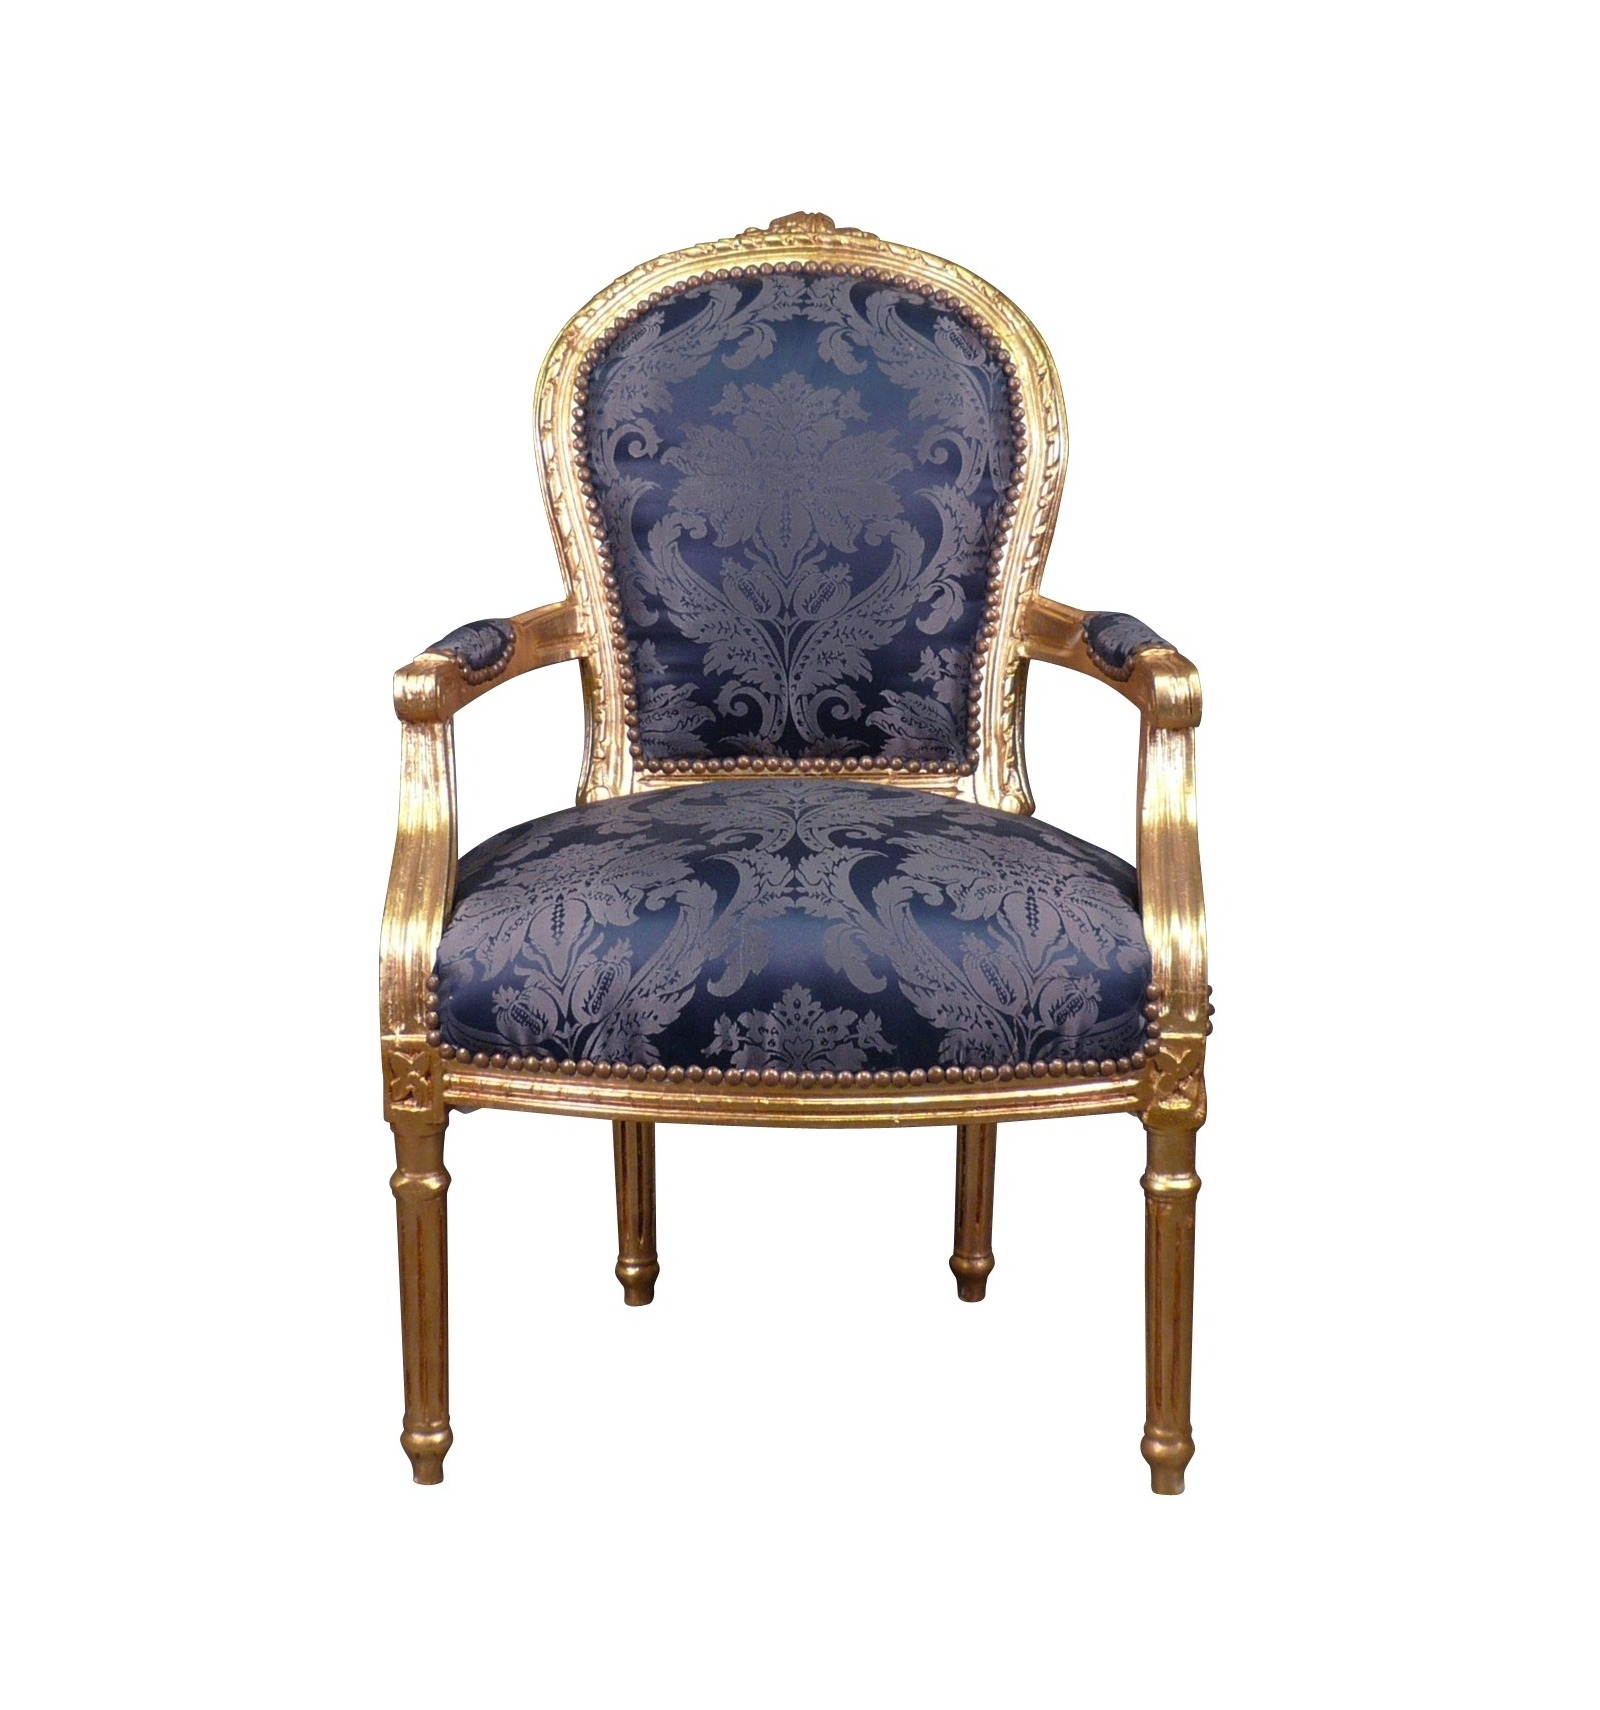 fauteuil louis xvi bleu roi style baroque. Black Bedroom Furniture Sets. Home Design Ideas